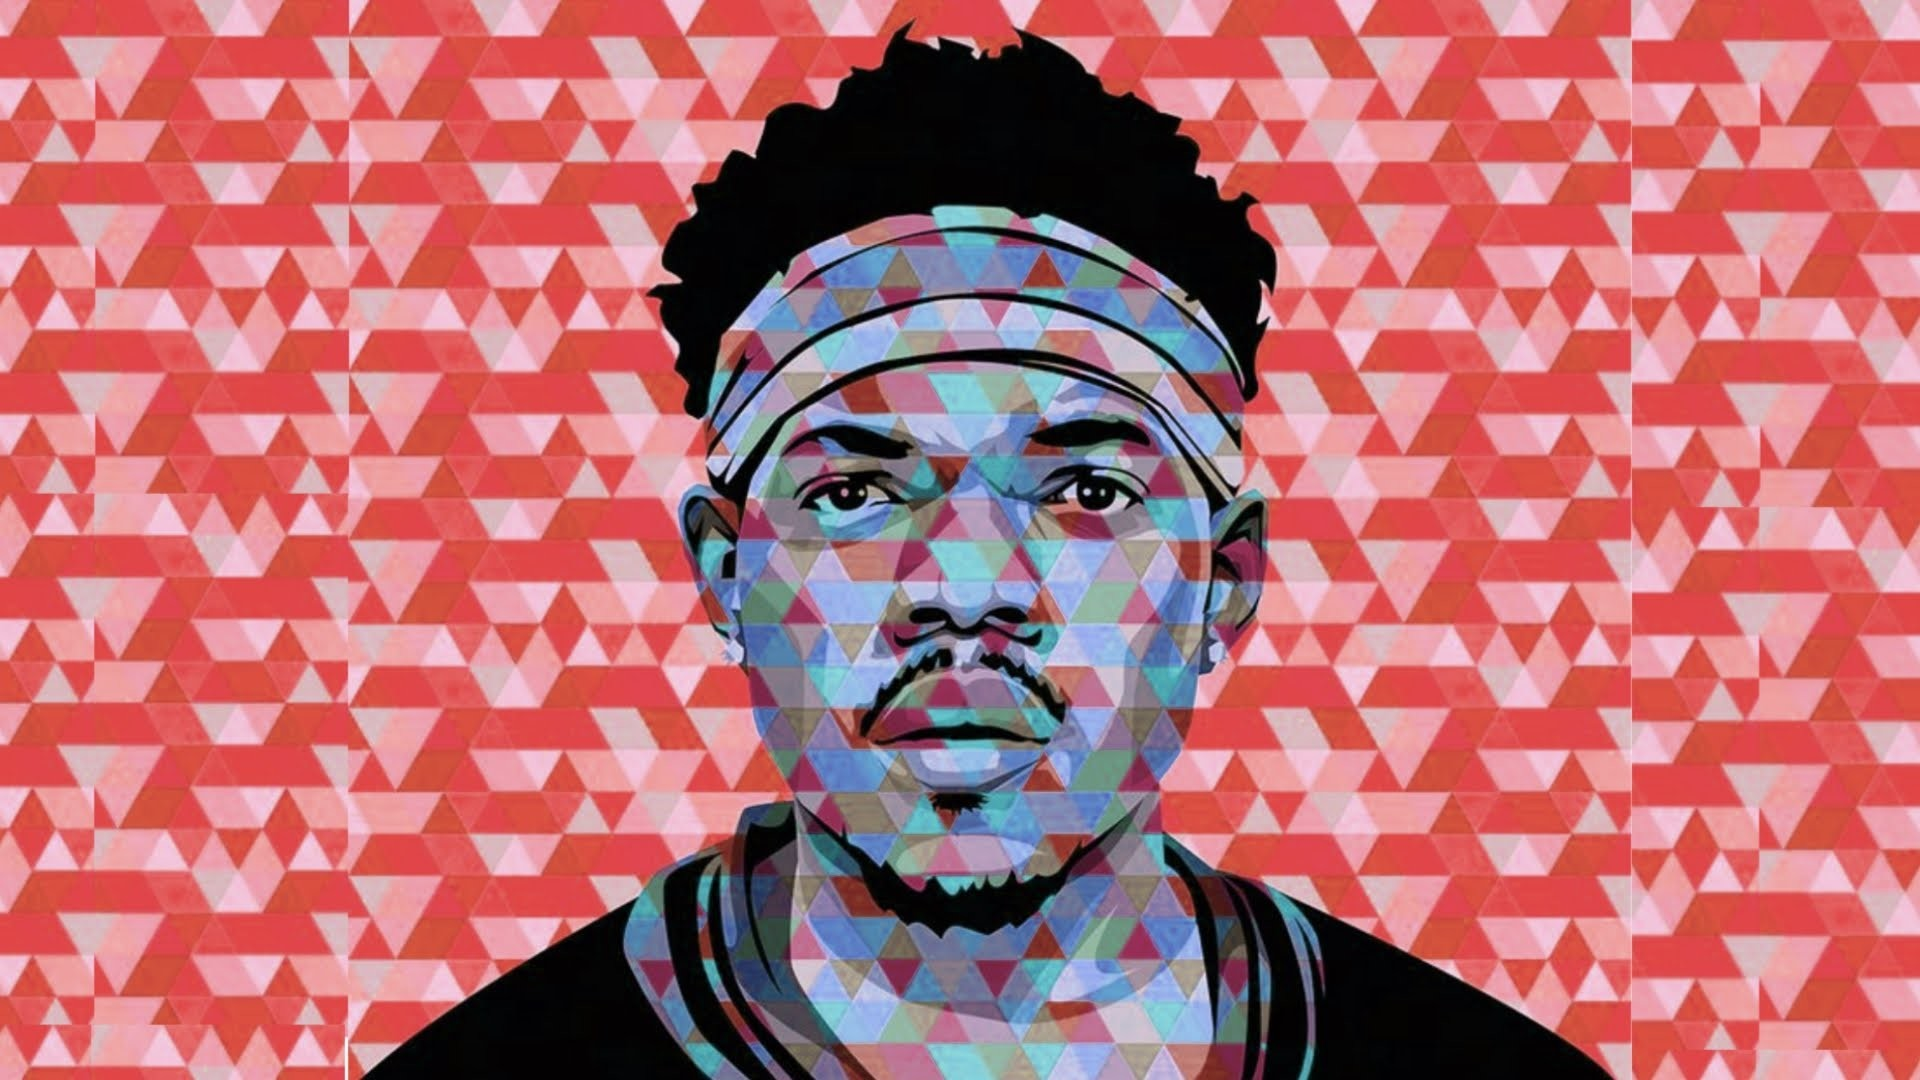 Chance The Rapper Iphone Wallpaper Chance The Rapper Wallpapers 183 ①